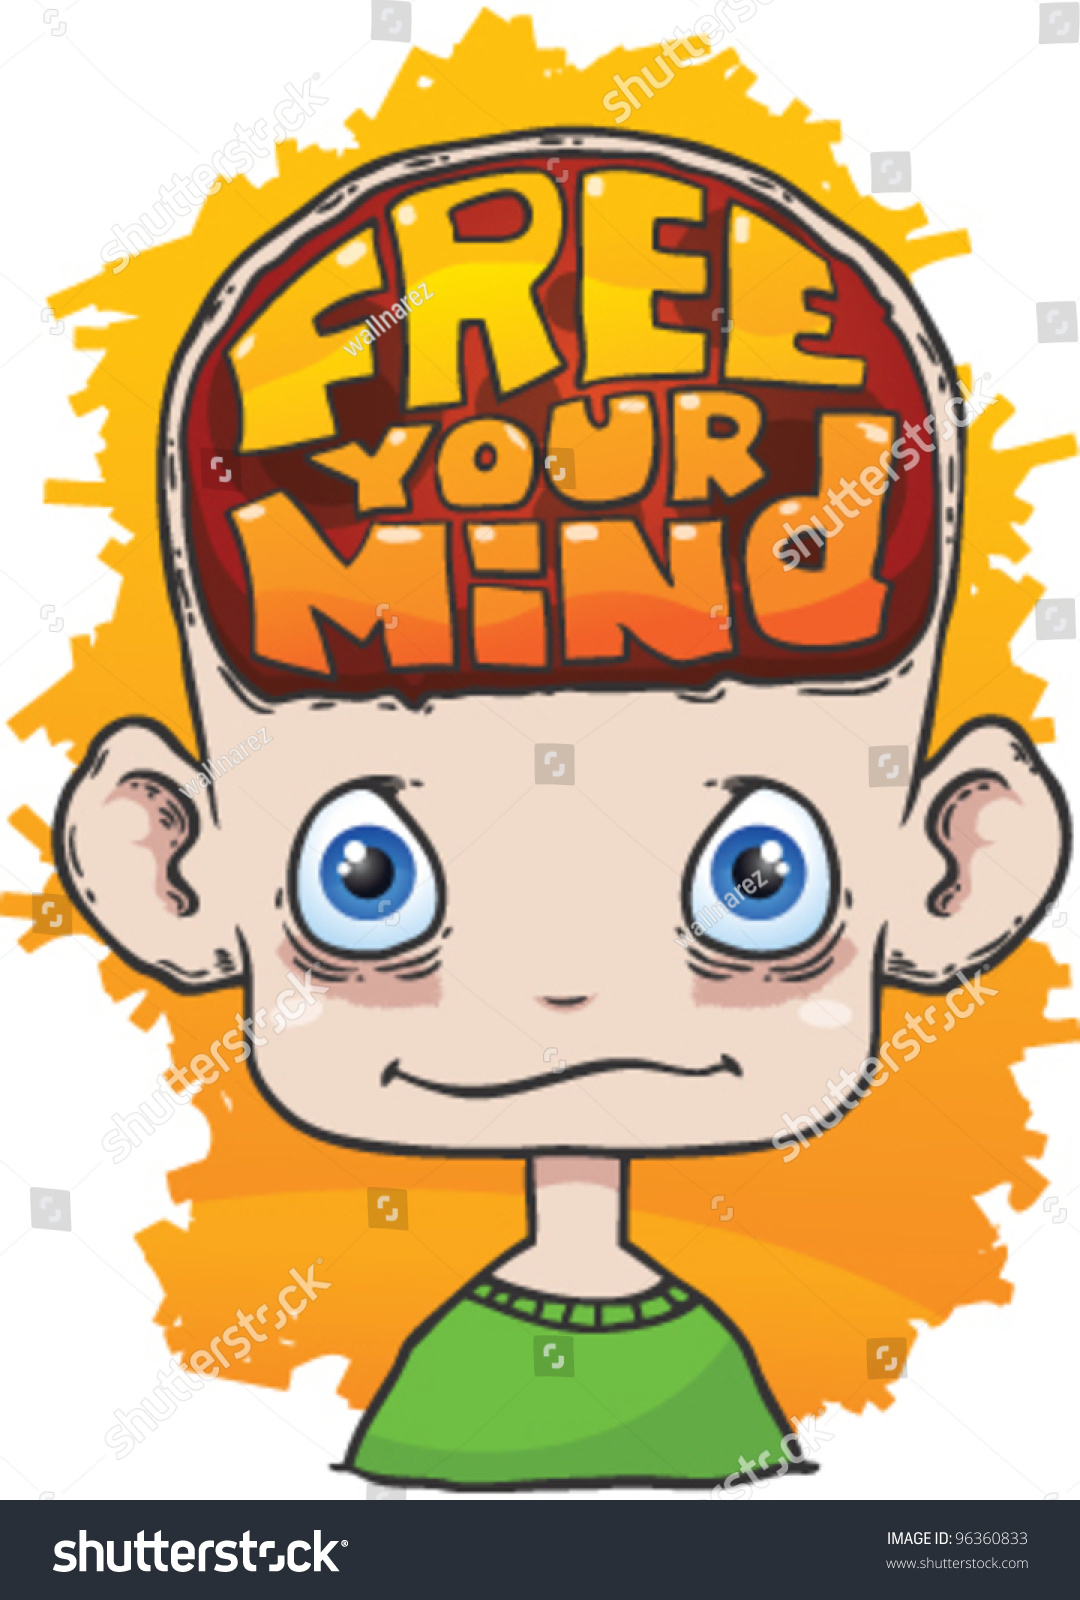 cartoon head text free your mind stock vector 96360833 shutterstock